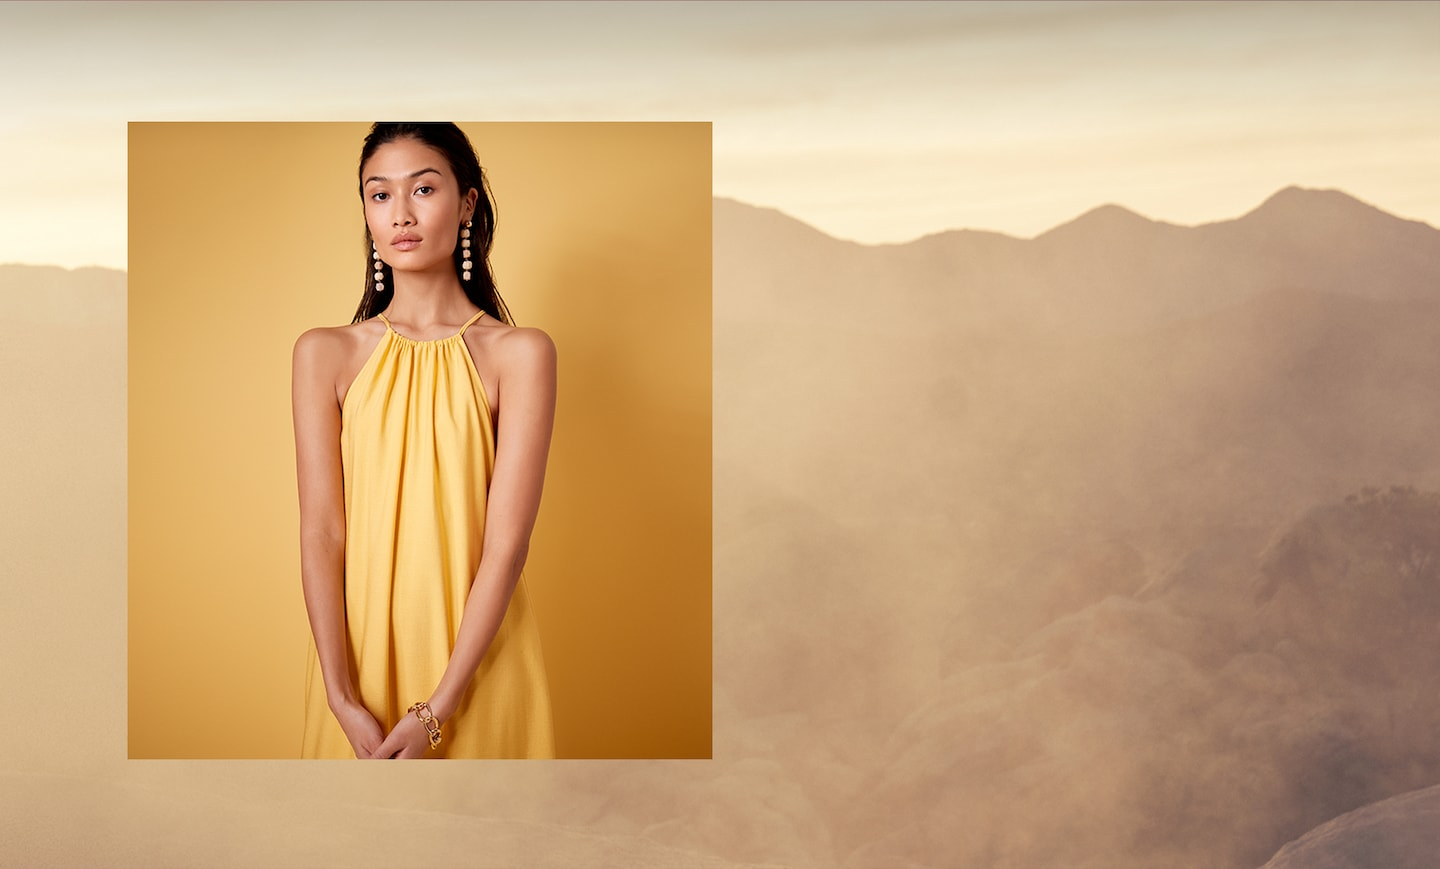 Campaign: Golden Hour. Image of woman in yellow dress with landscape background